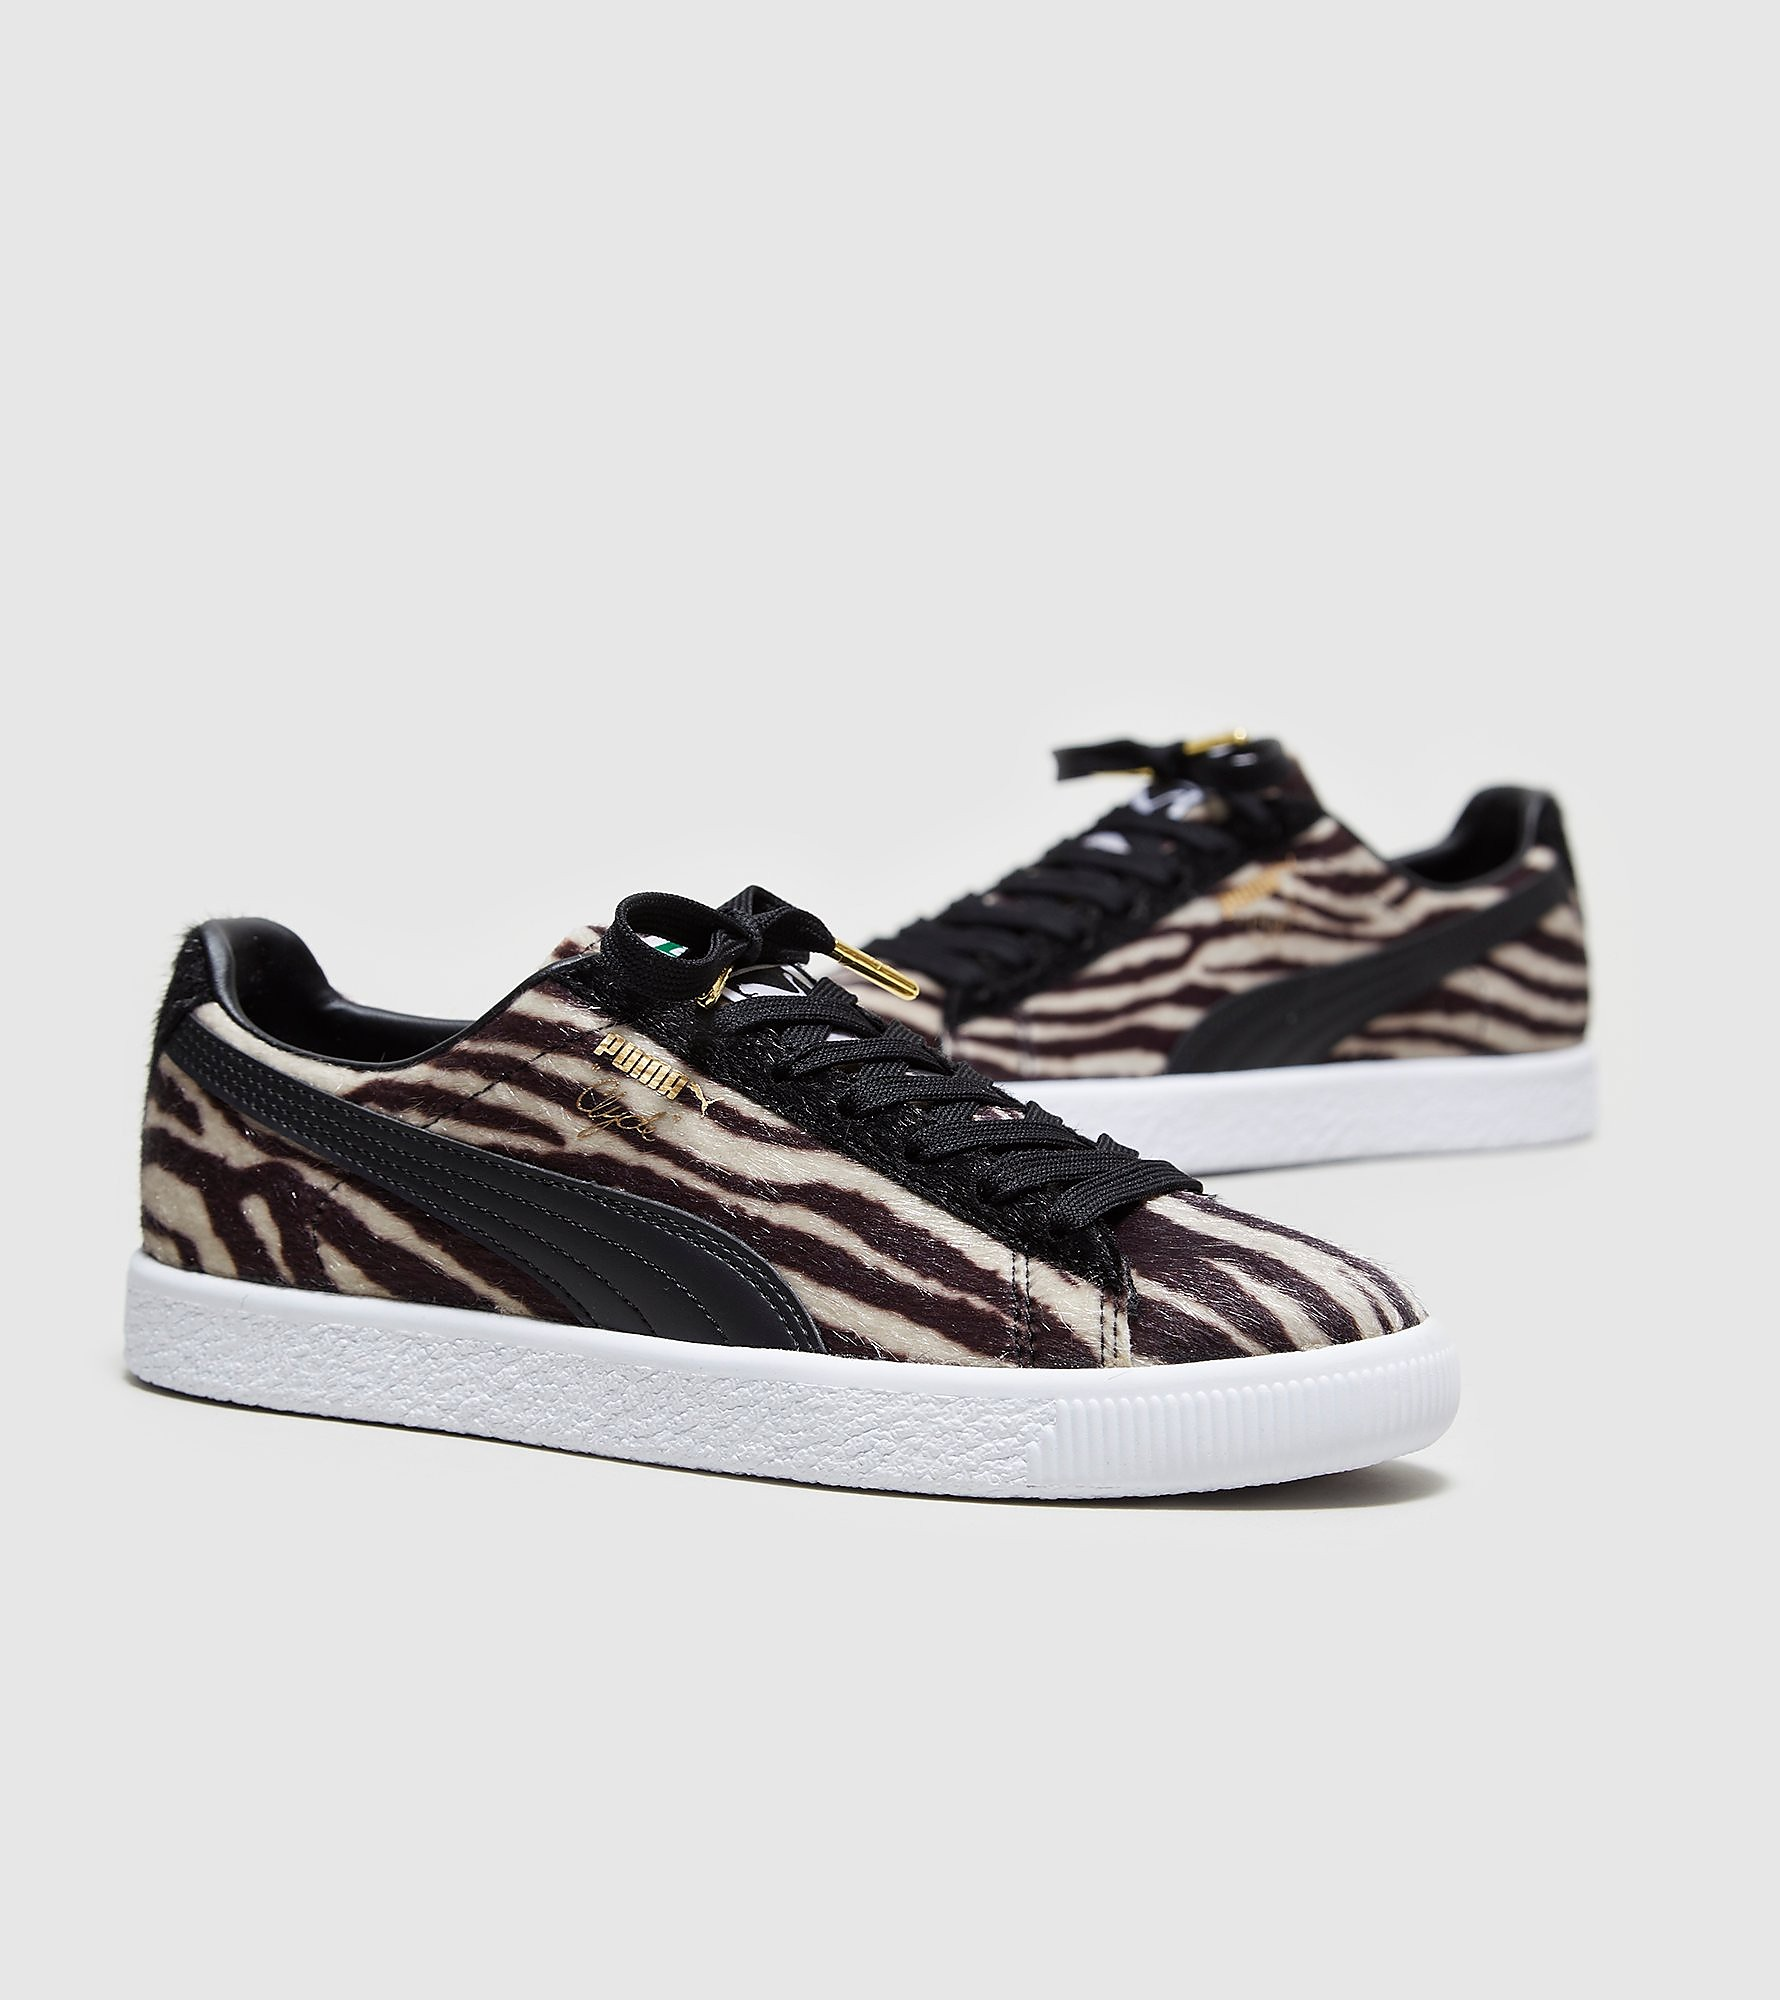 PUMA Clyde 'Suits' Pack Women's